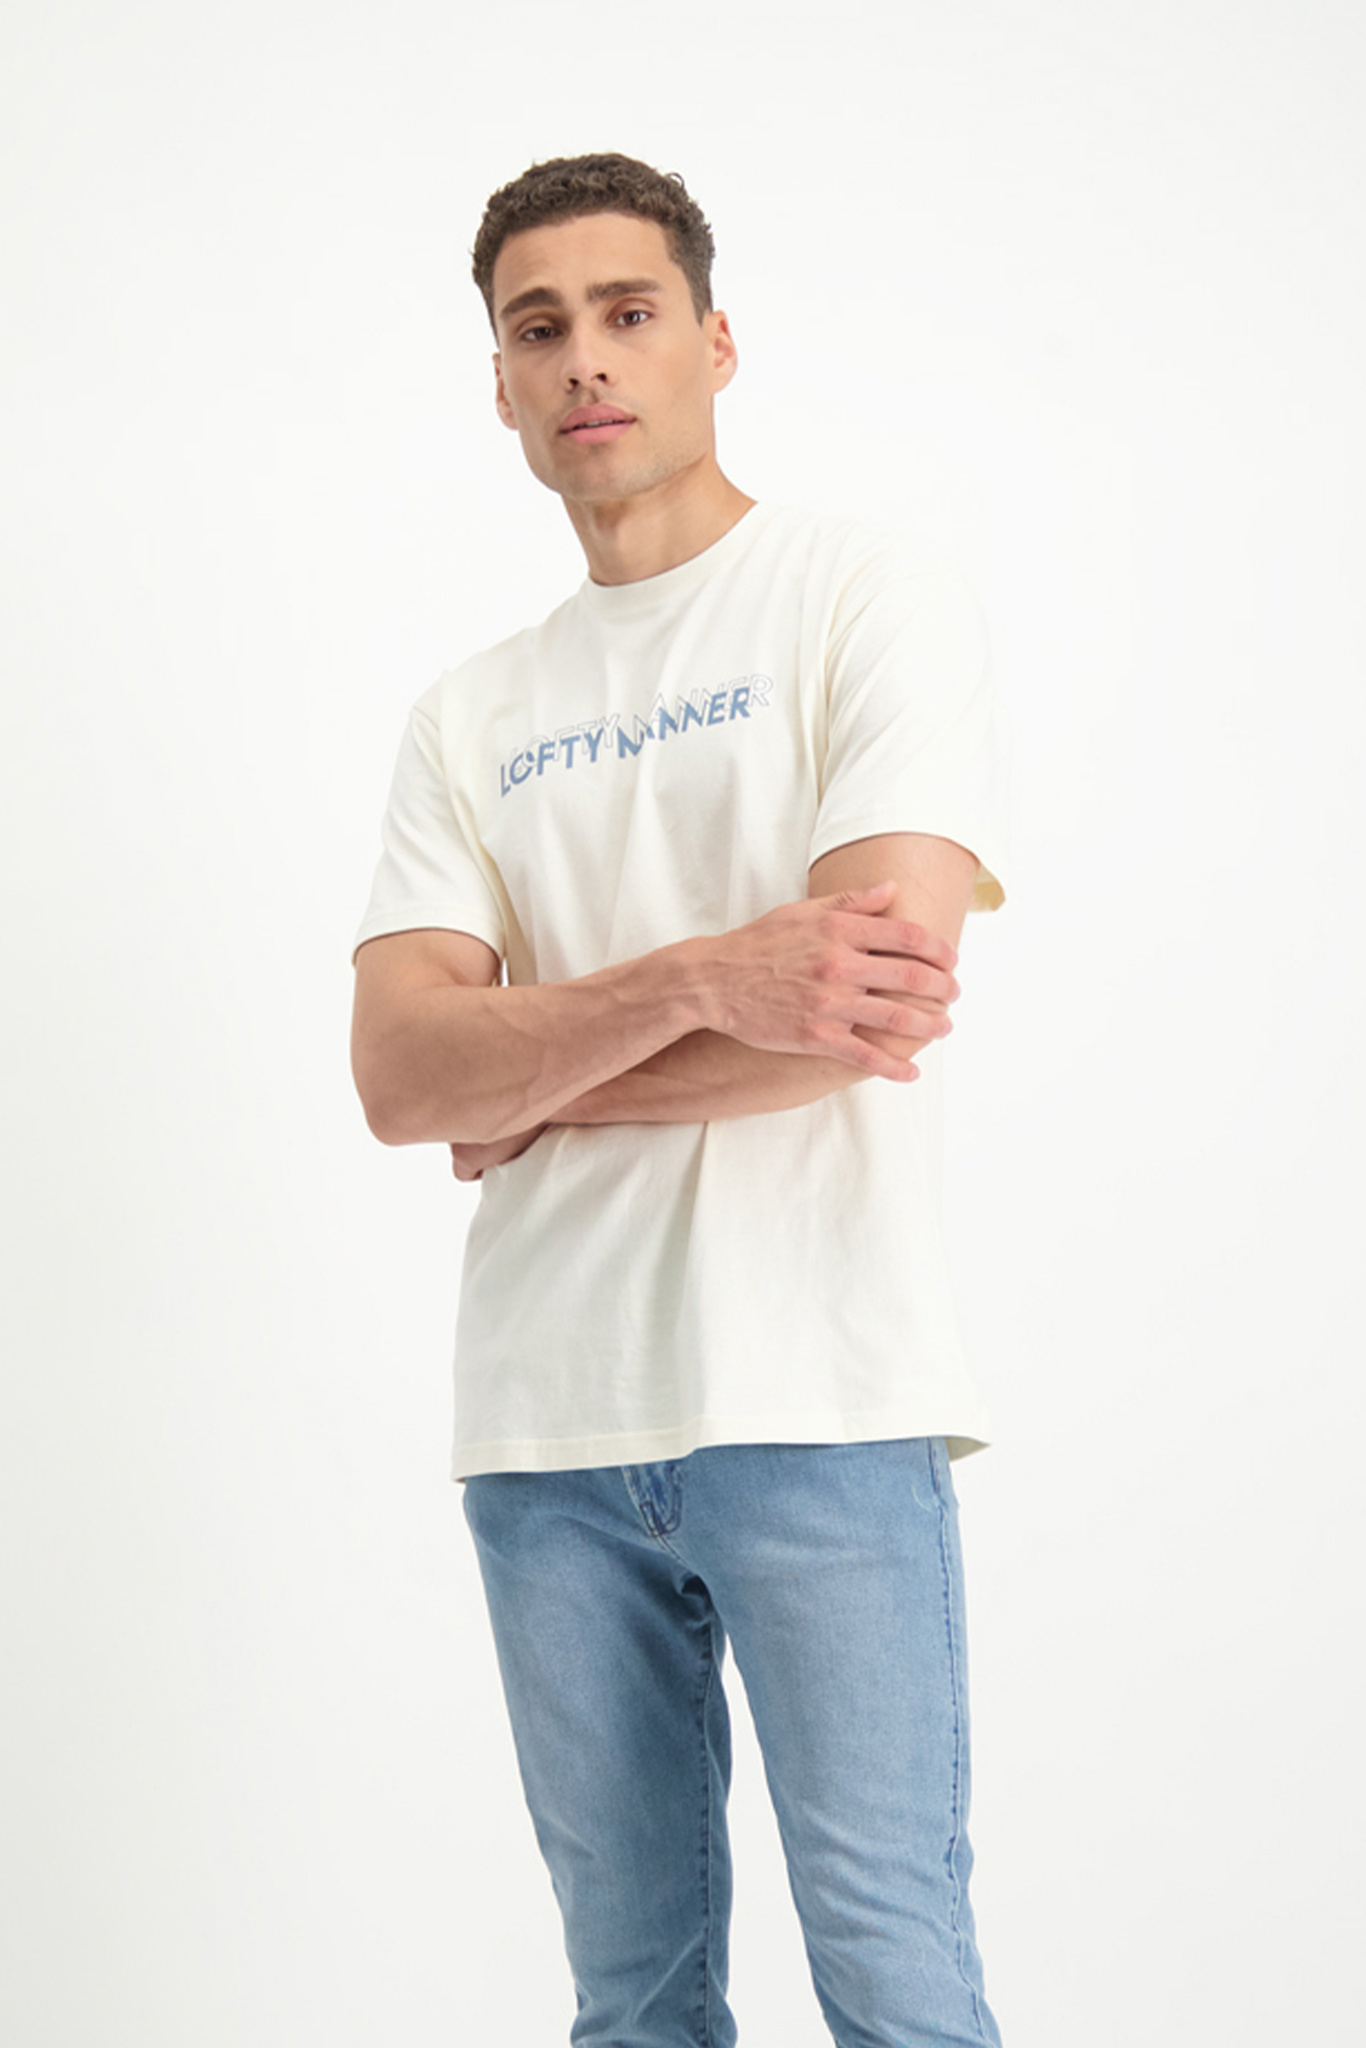 Lofty Manner Off white T-shirt Paco